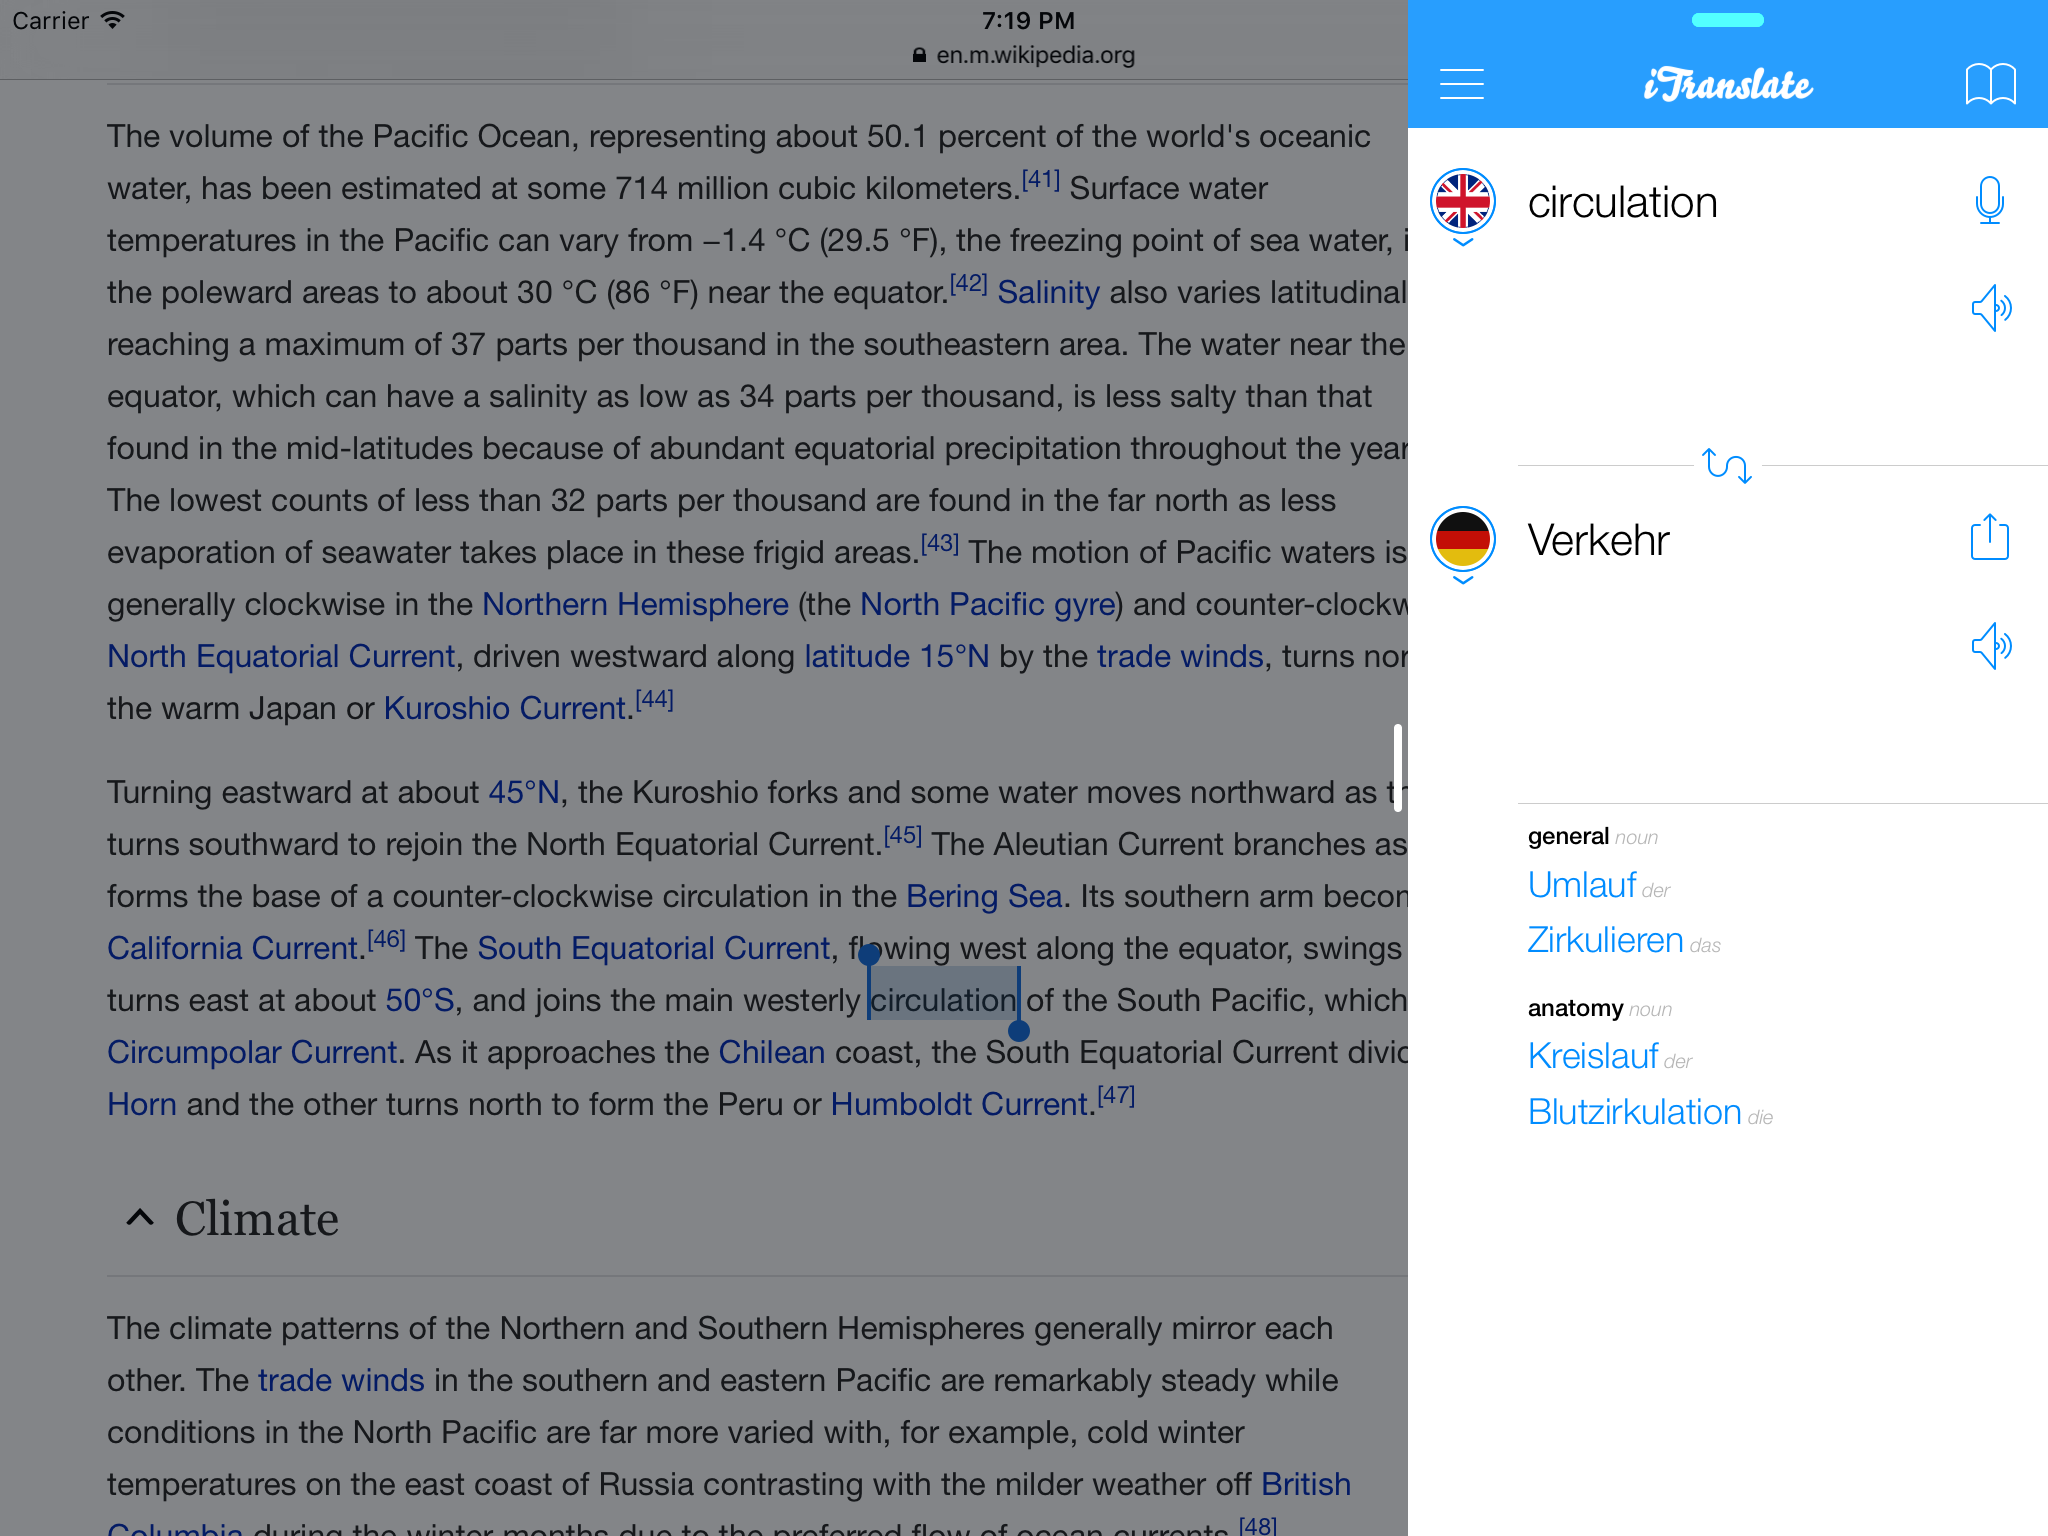 iTranslate 9.0 for iOS Slide Over iPad screenshot 001